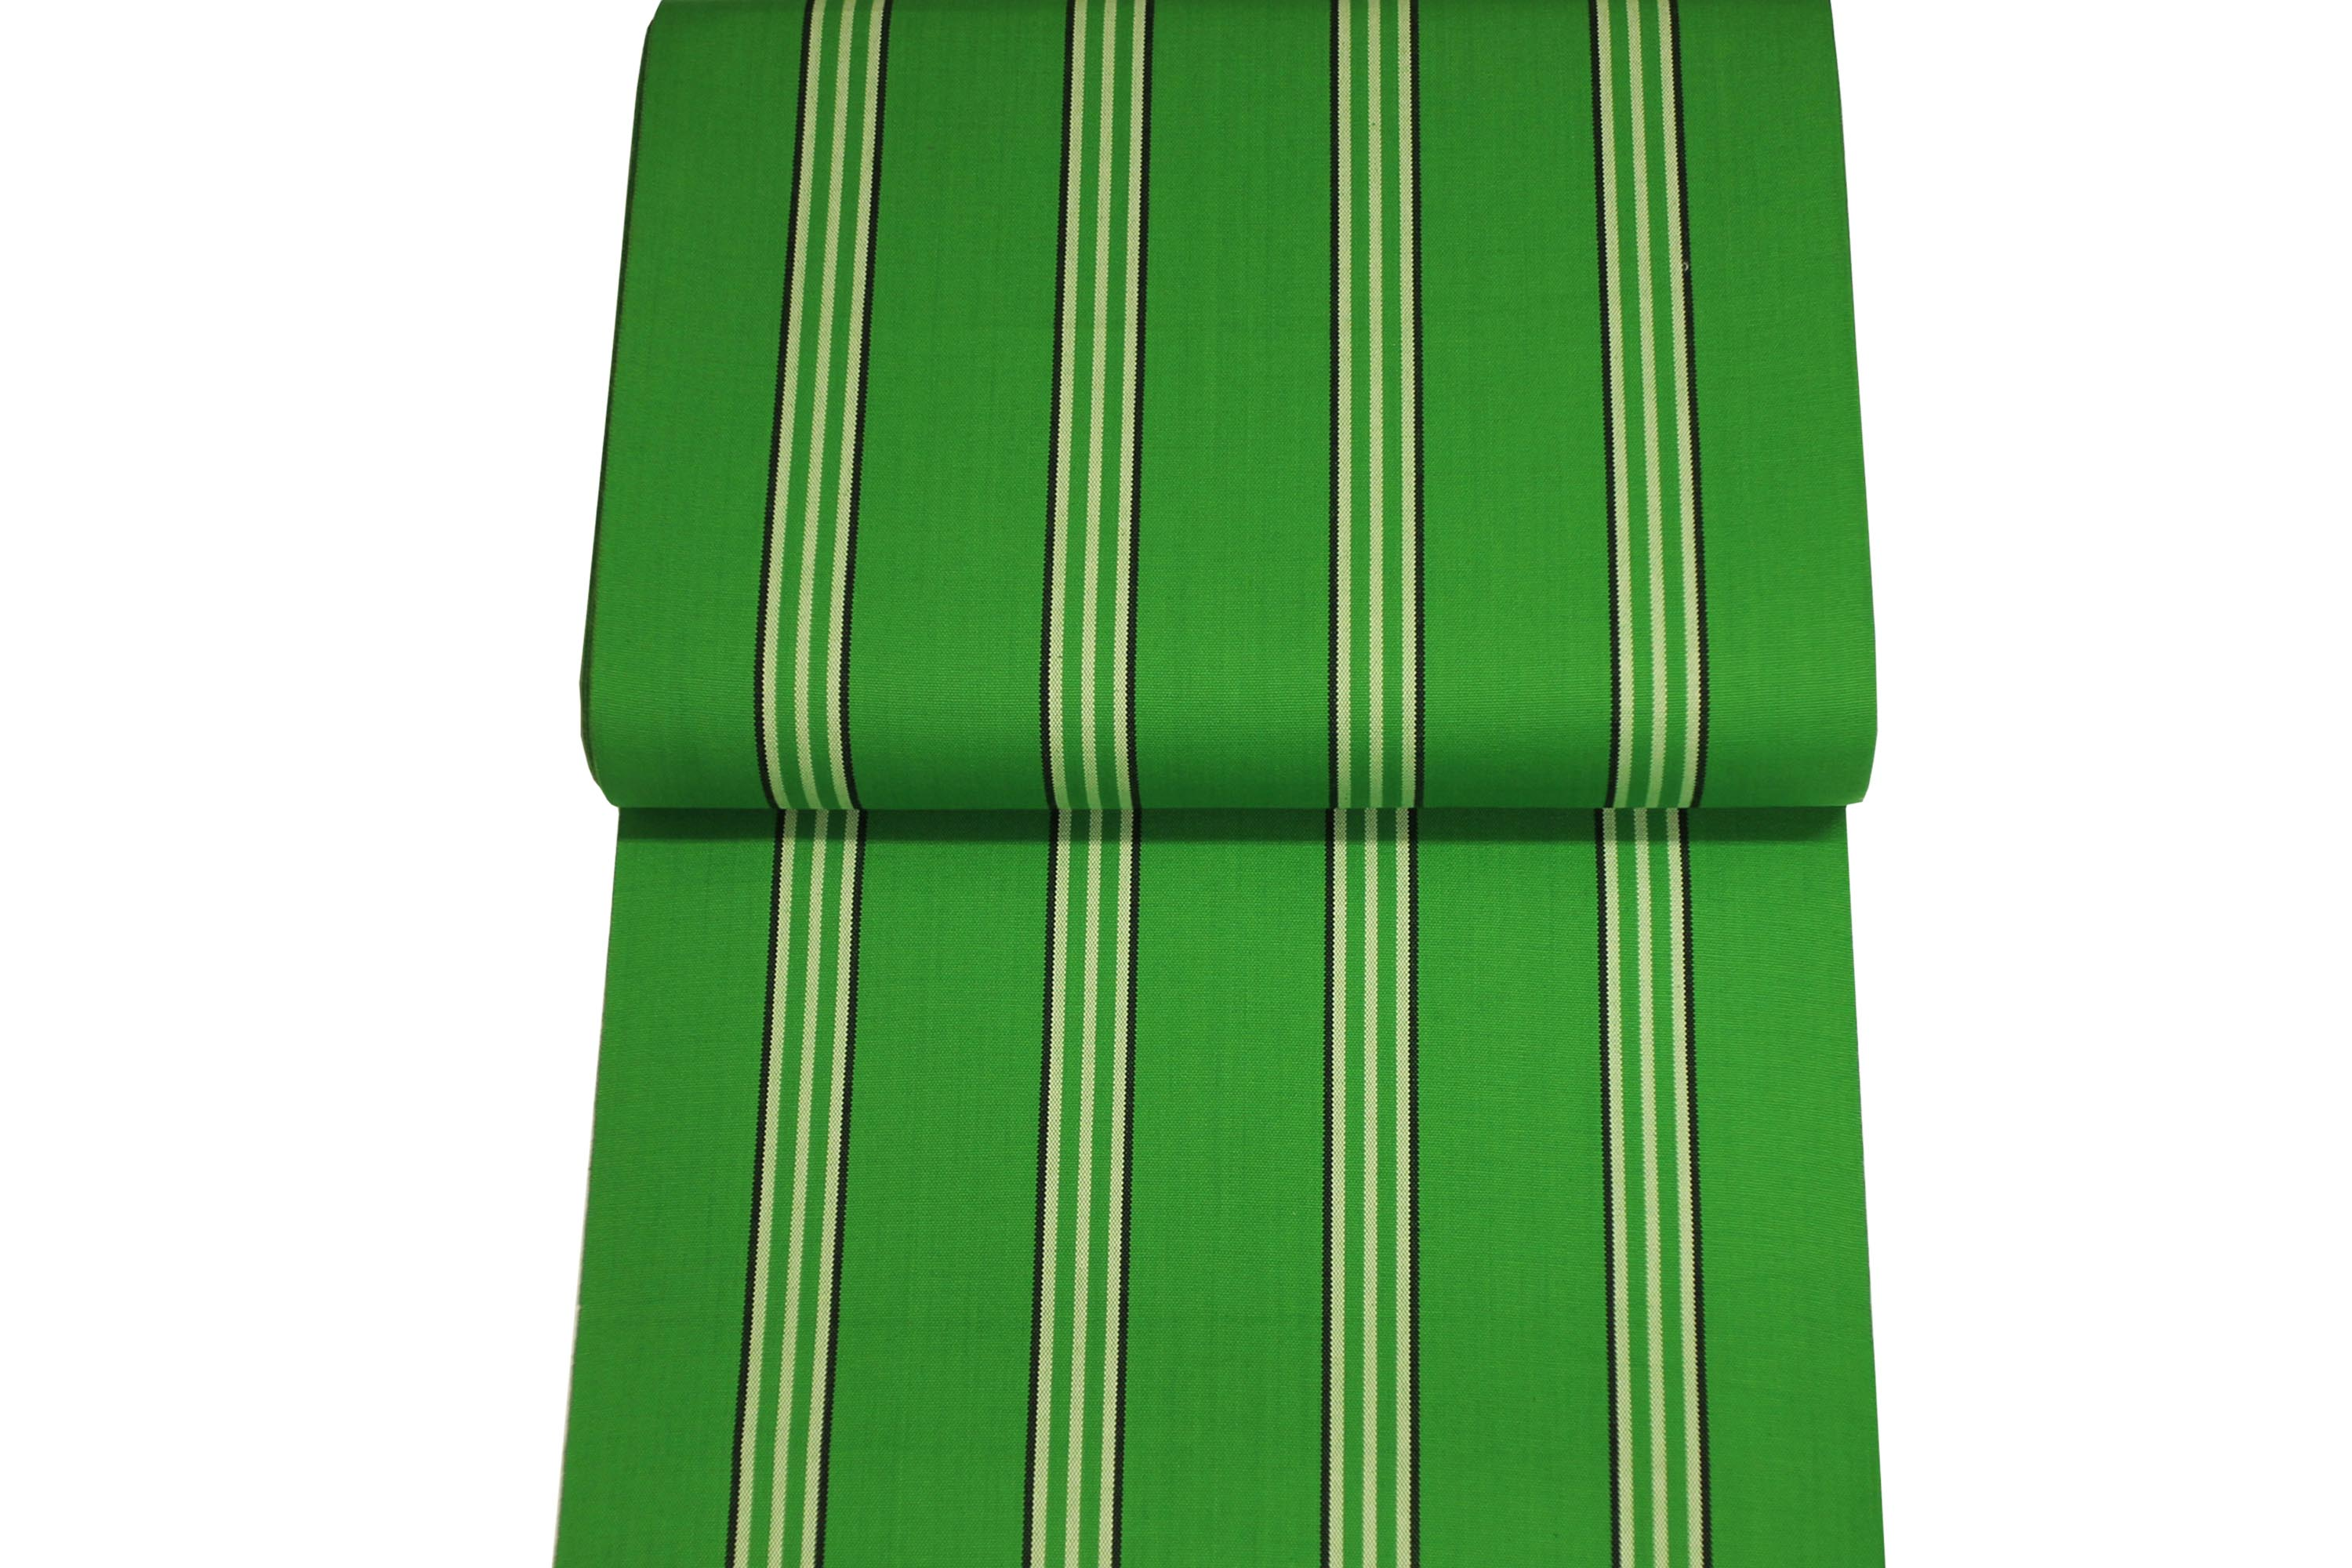 Emerald Green Deckchair Canvas